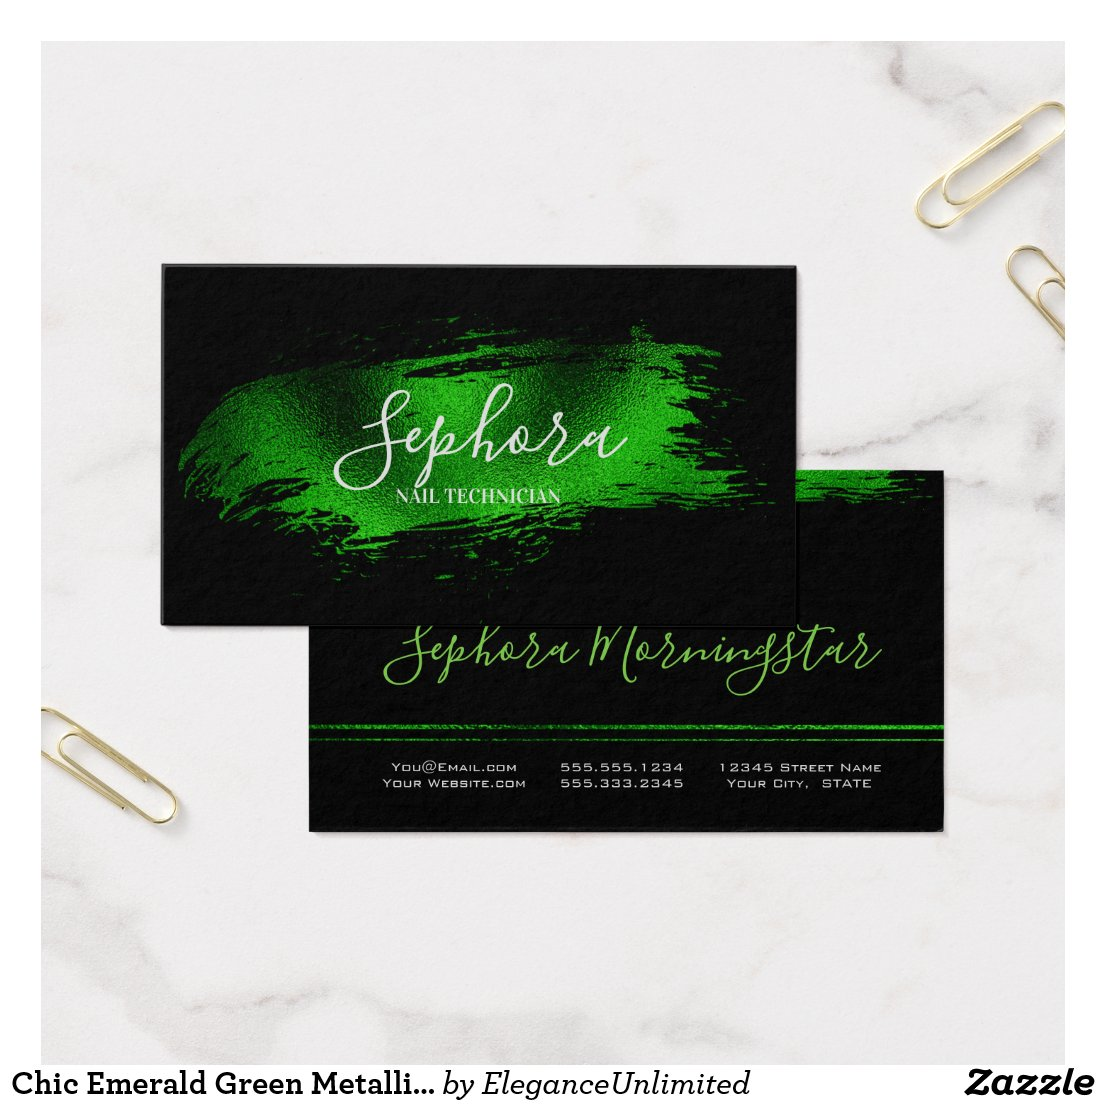 Chic Emerald Green Metallic Foil Paint Stroke